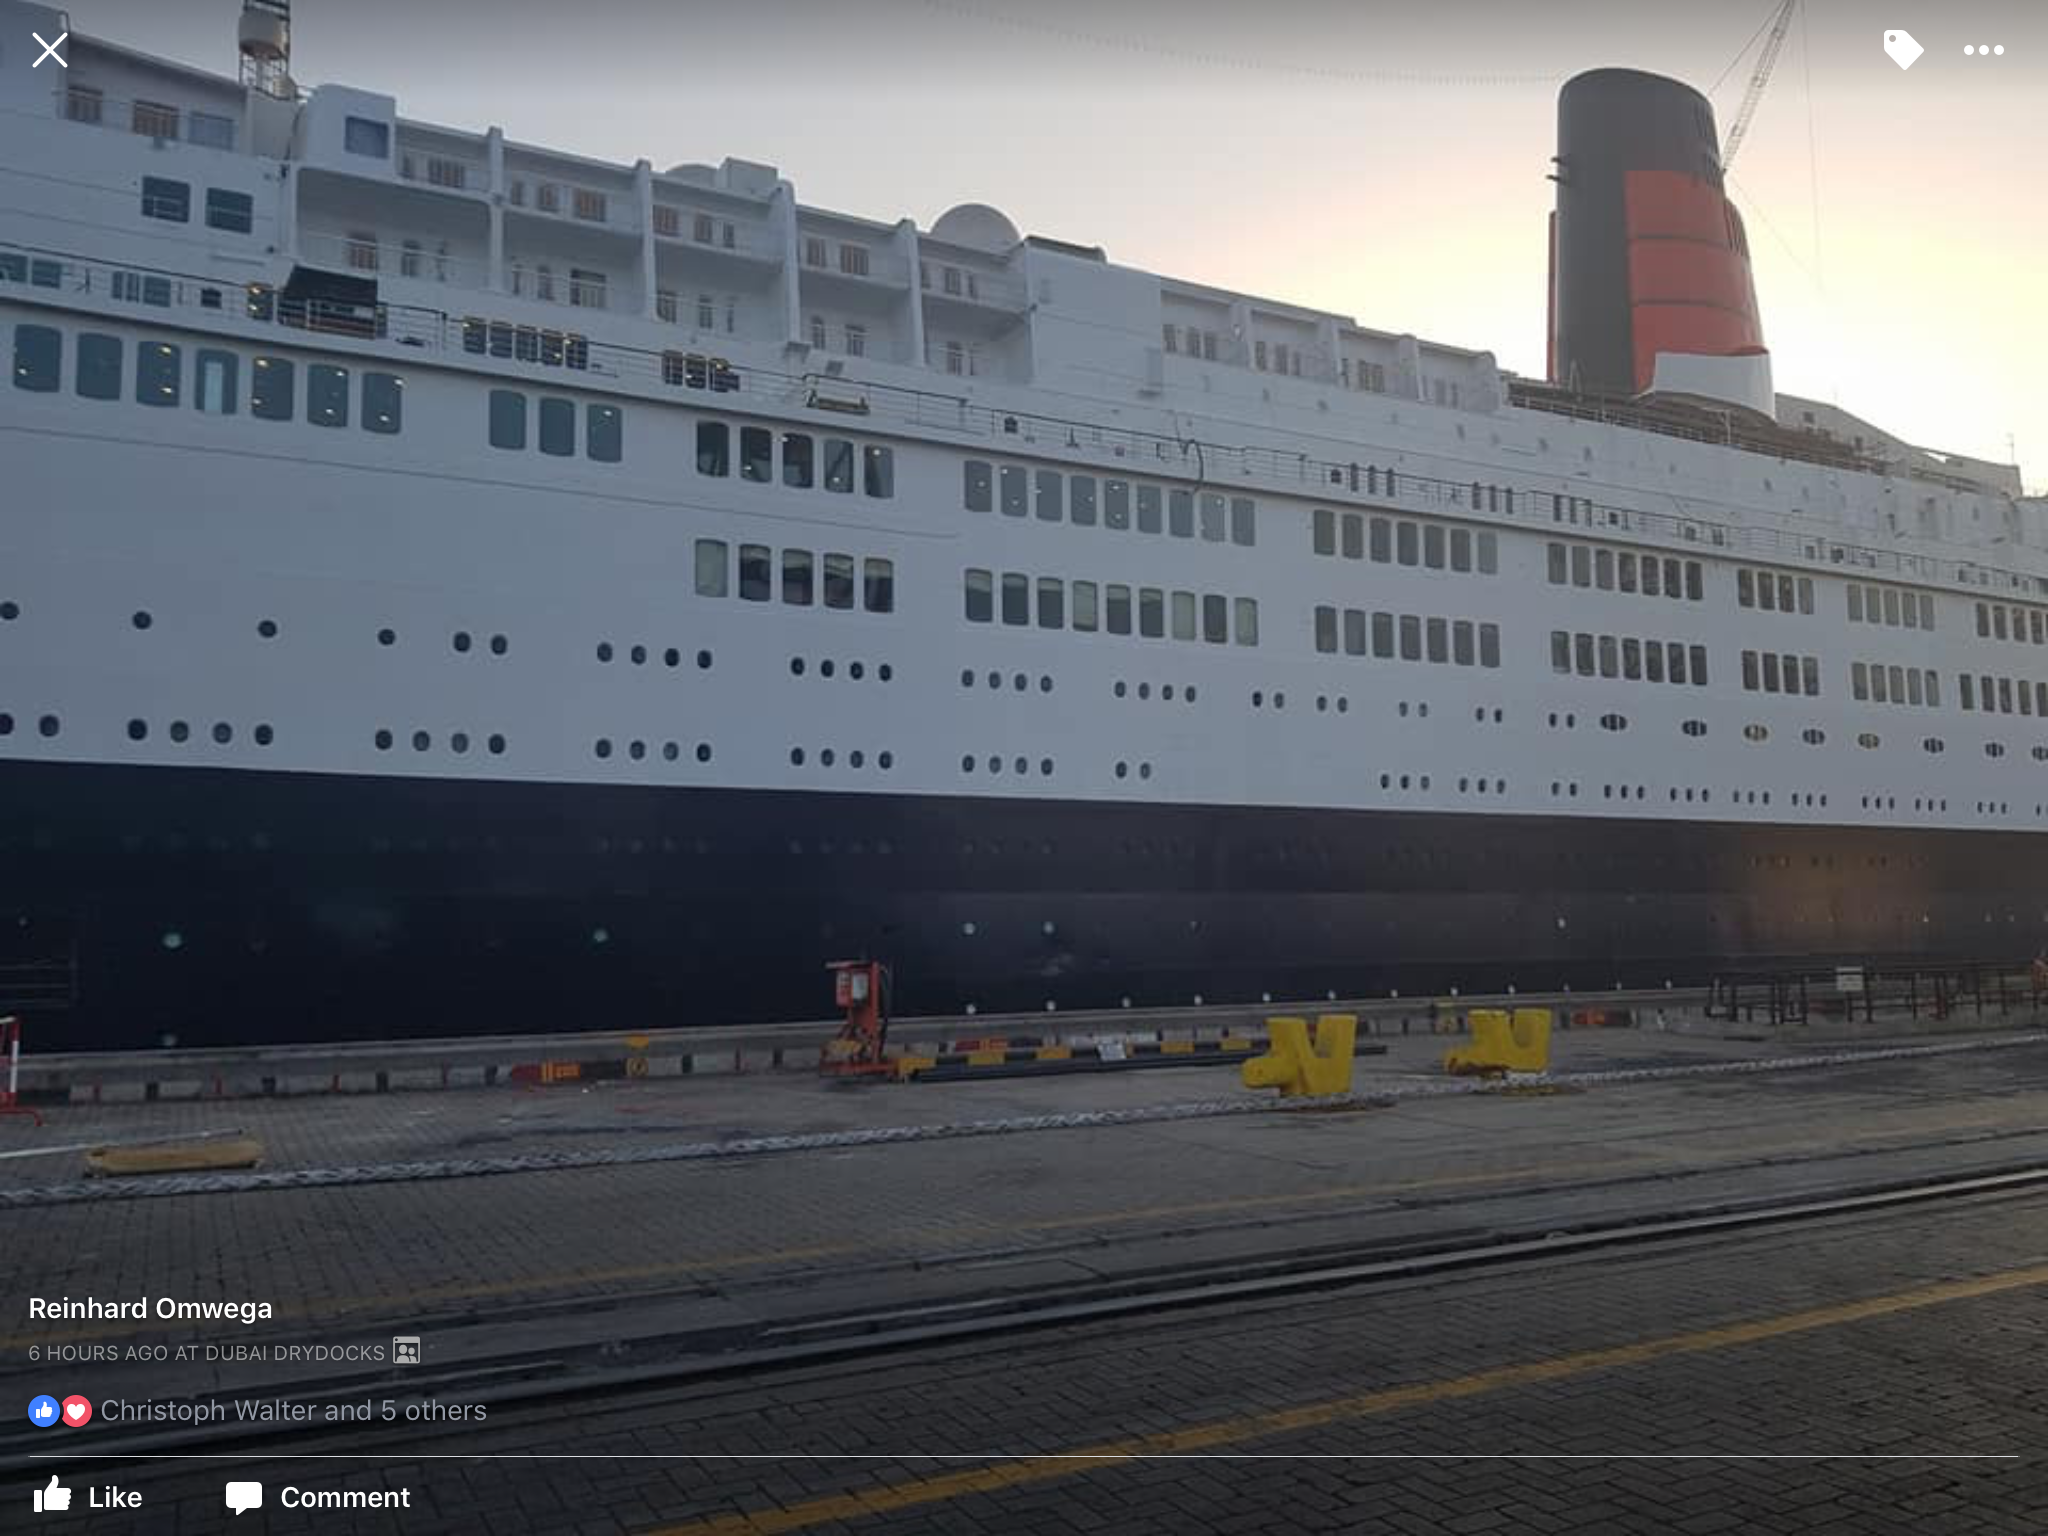 Pin By Oceanic House On Cunard Qe2 Rms Queen Elizabeth Cunard Majesty